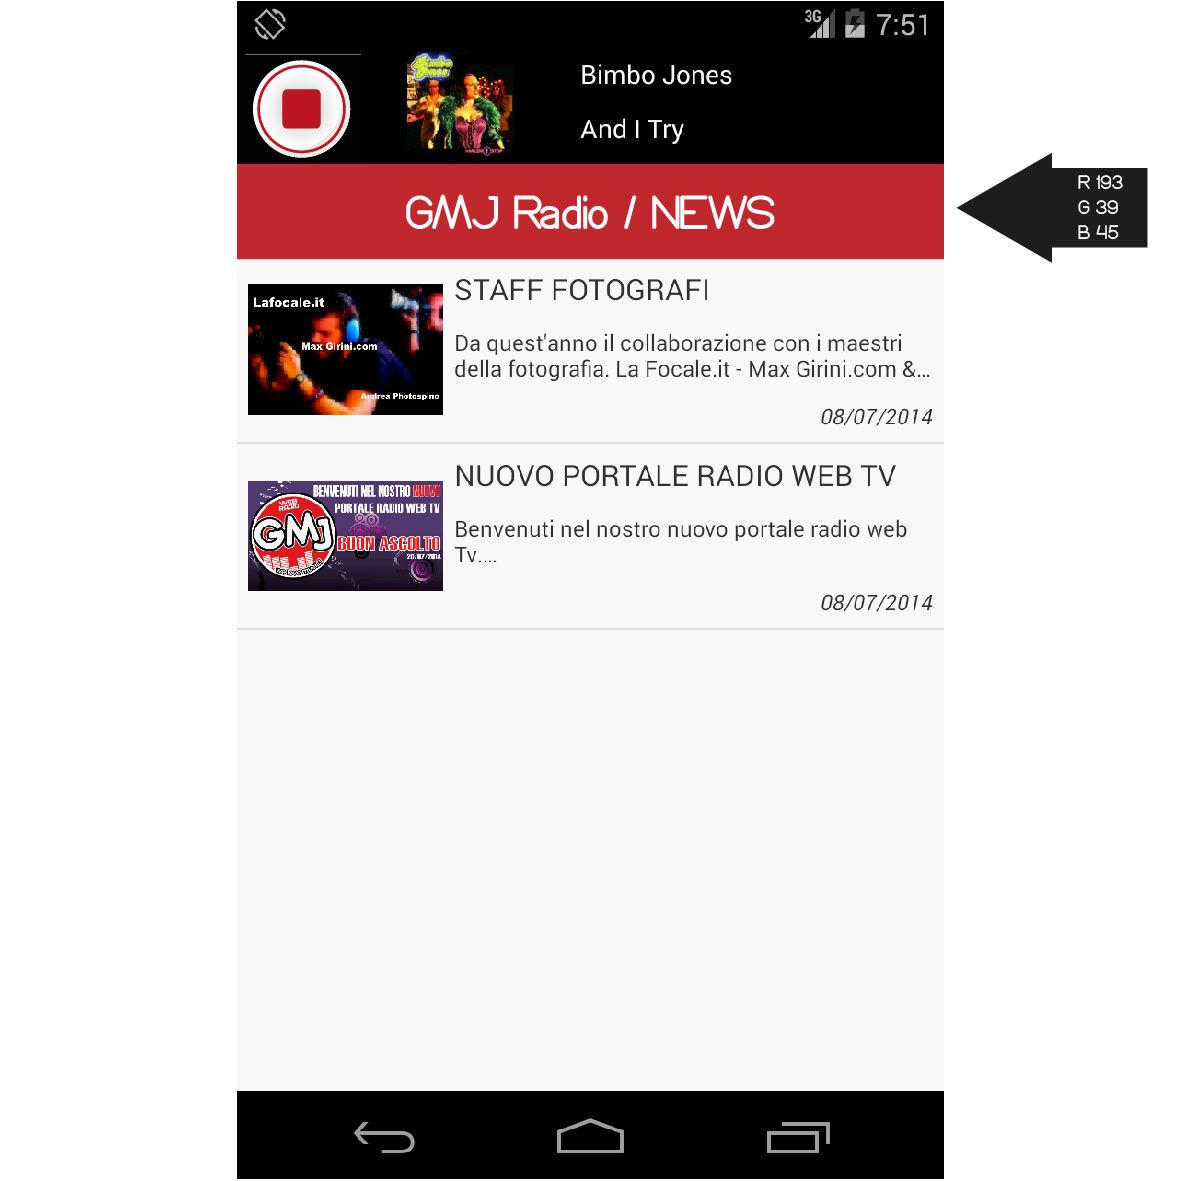 Gmj Radio App Web tv, Radio e Portale